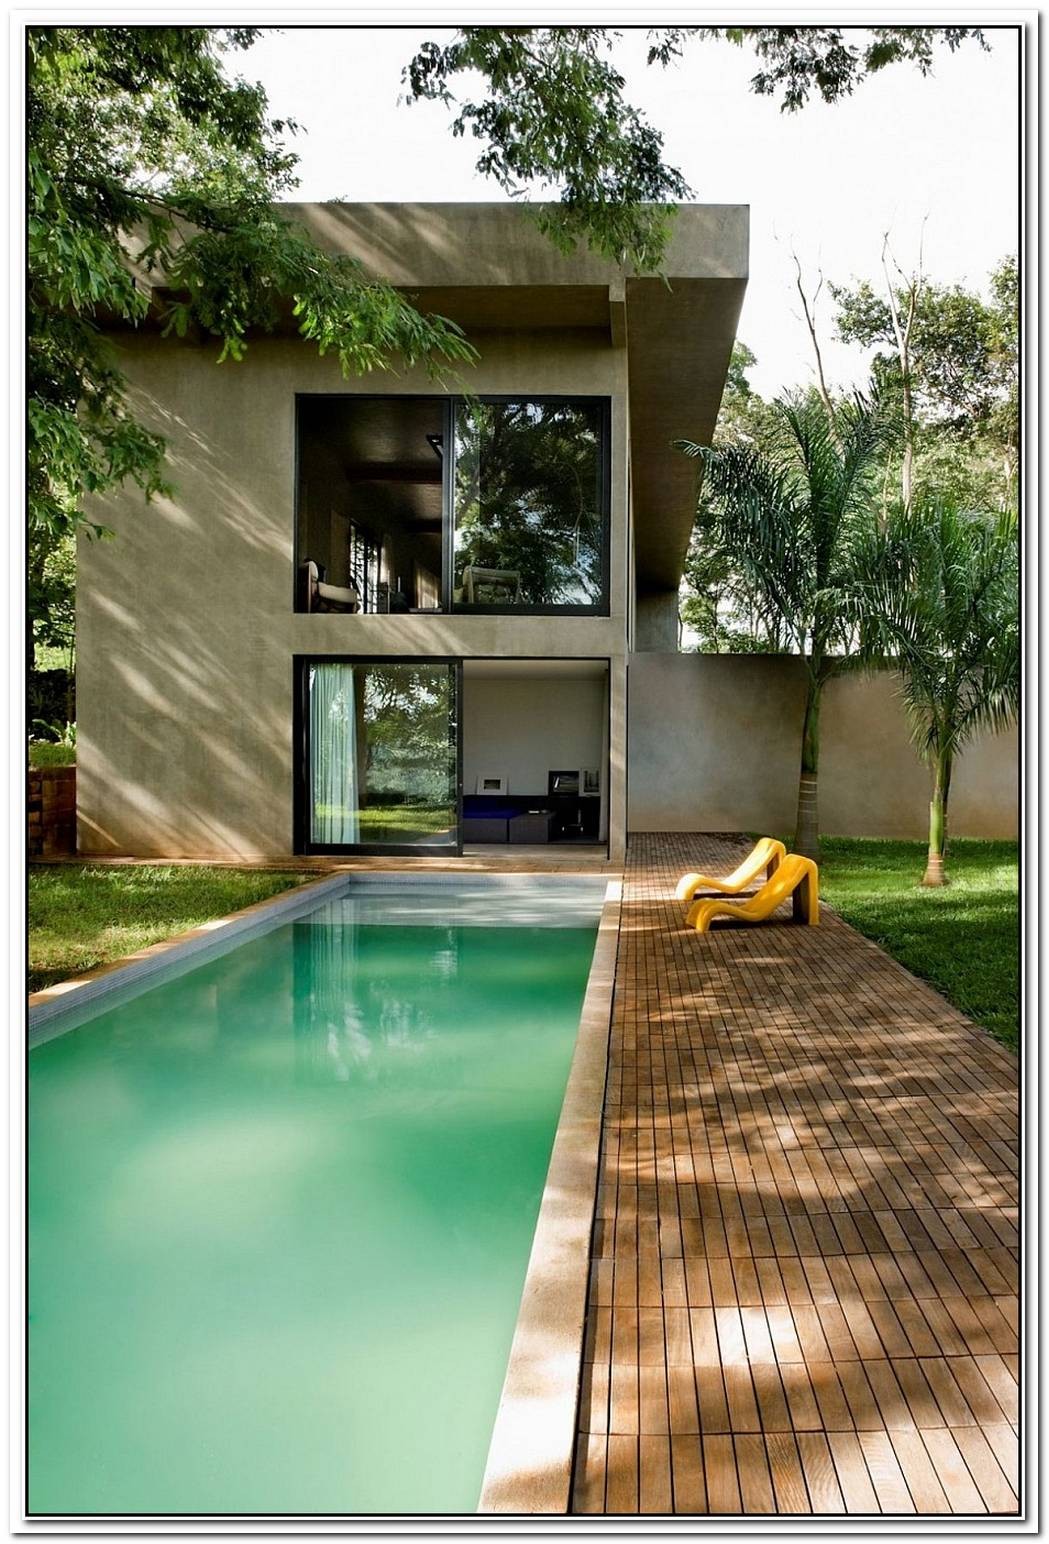 Charming Industrial House In Brazil With A Daring Splash Of Red